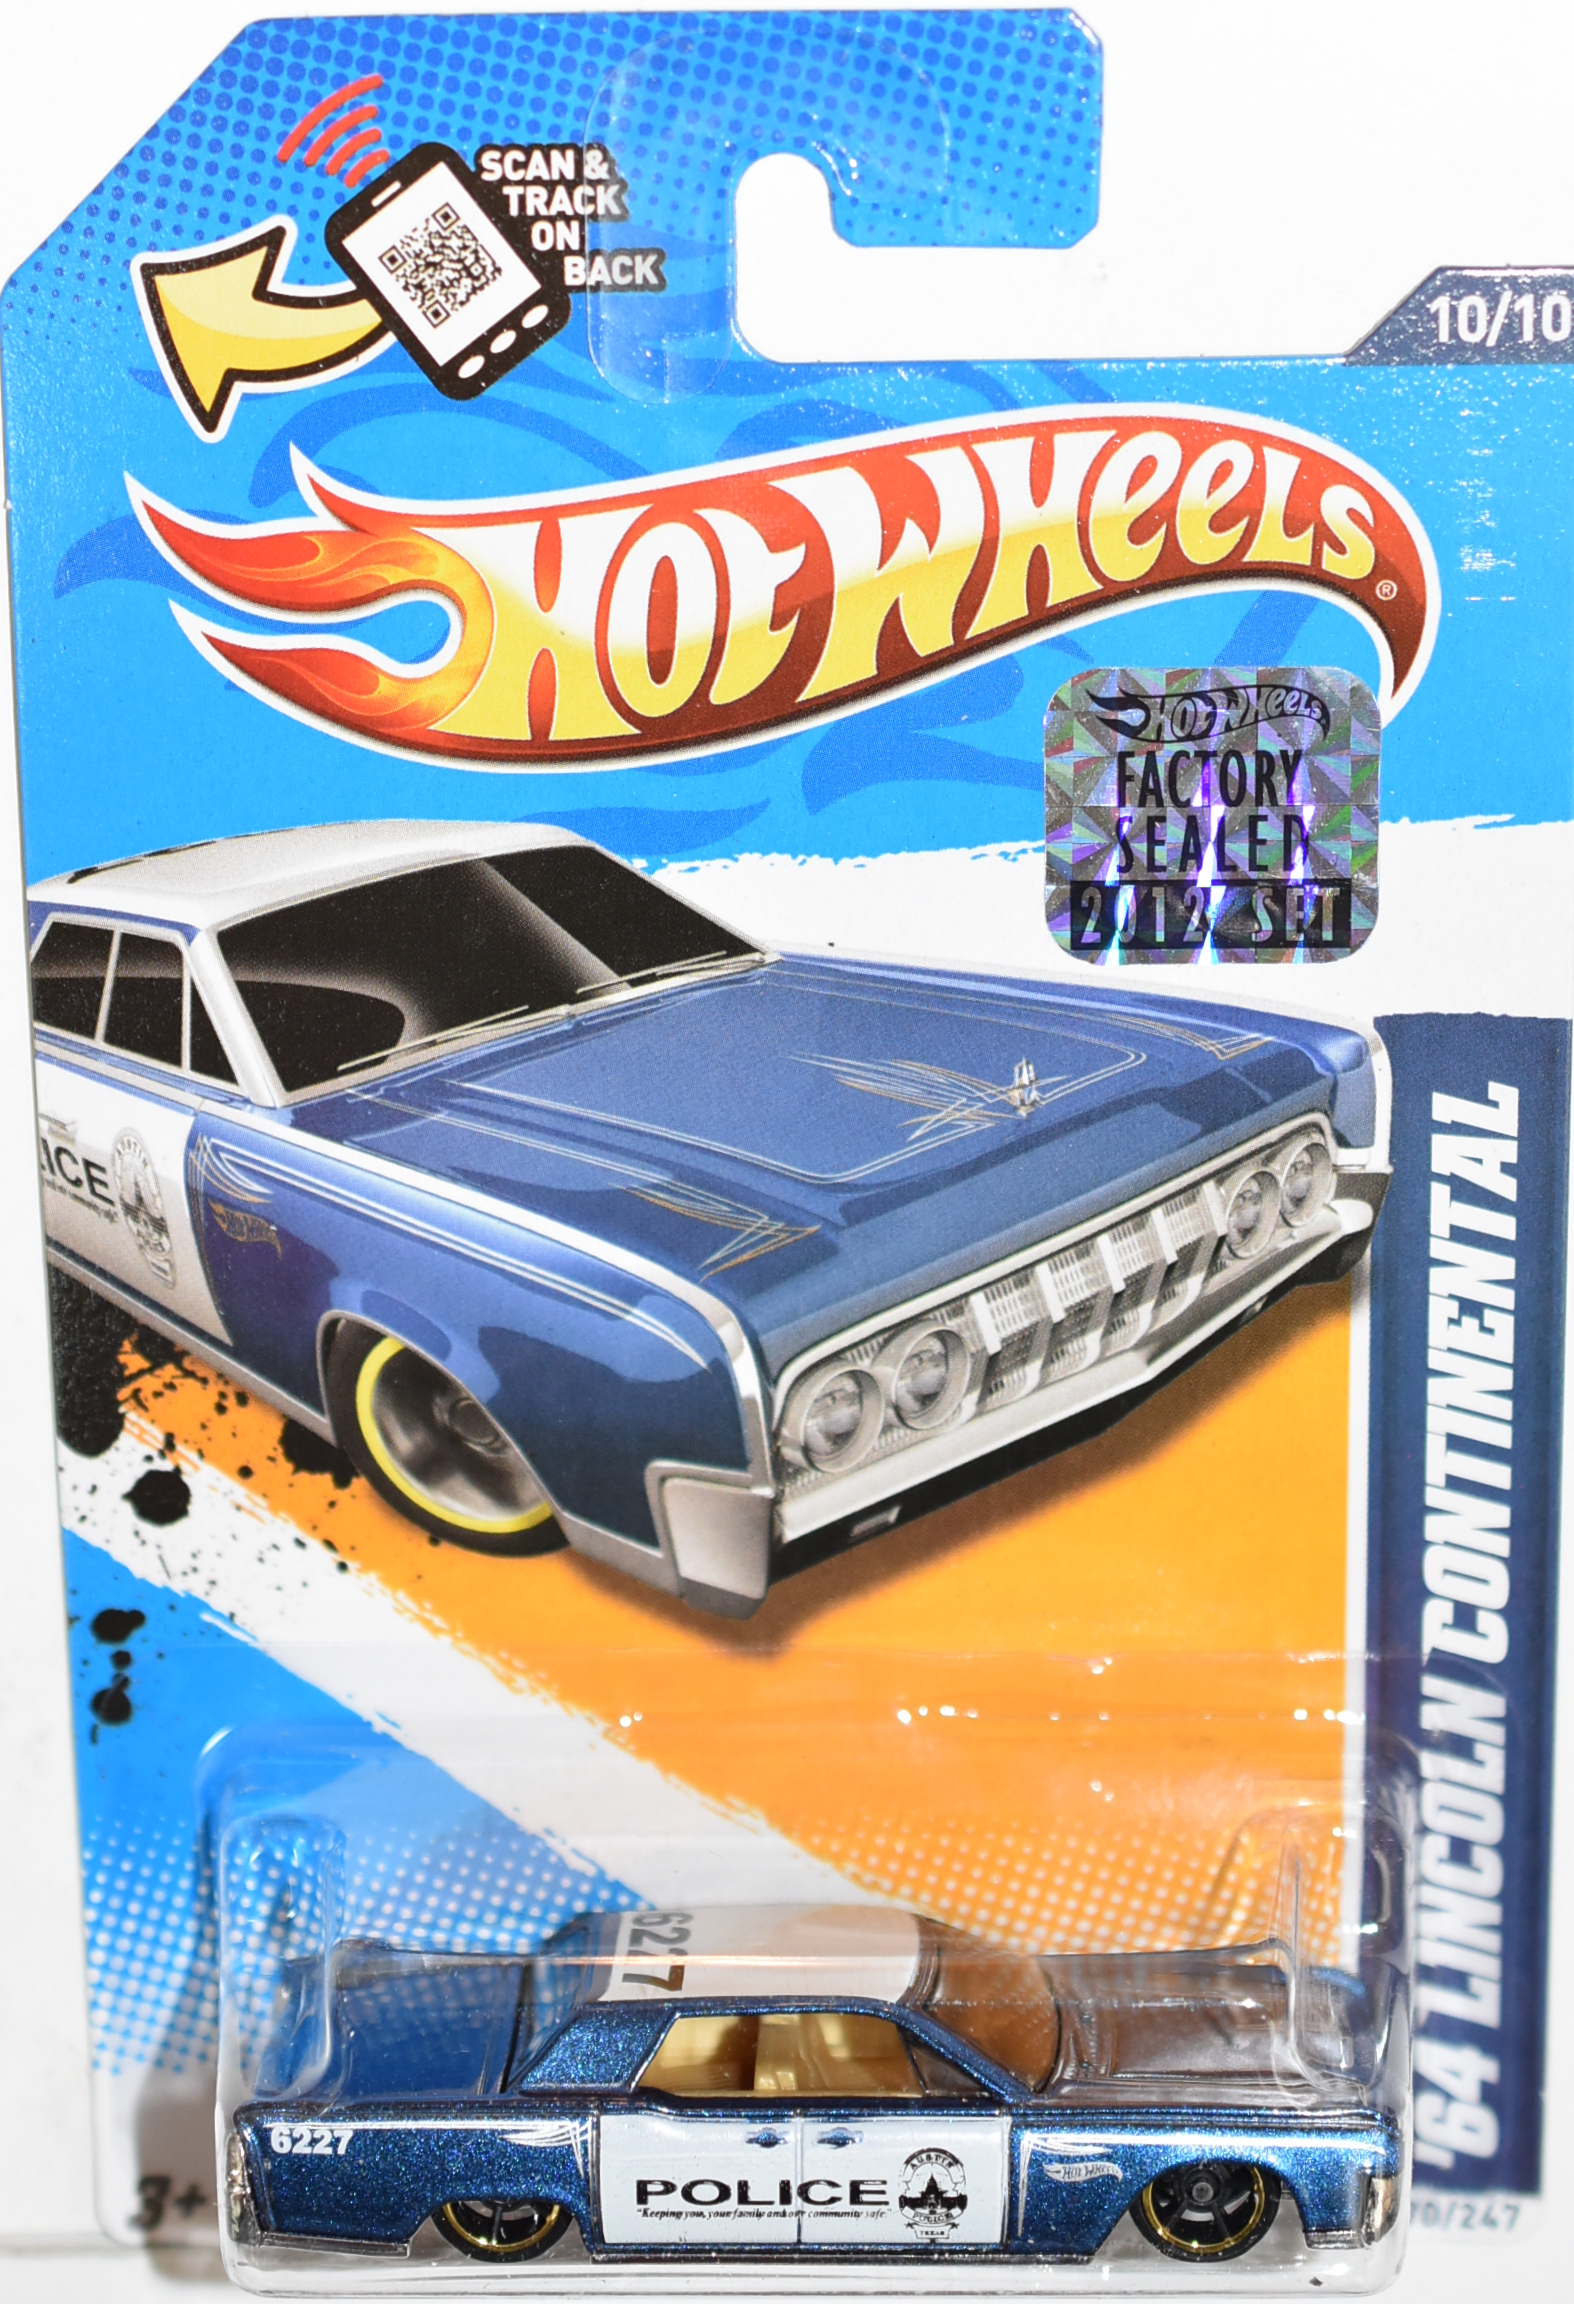 HOT WHEELS 2012 '64 LINCOLN CONTINENTAL FACTORY SEALED